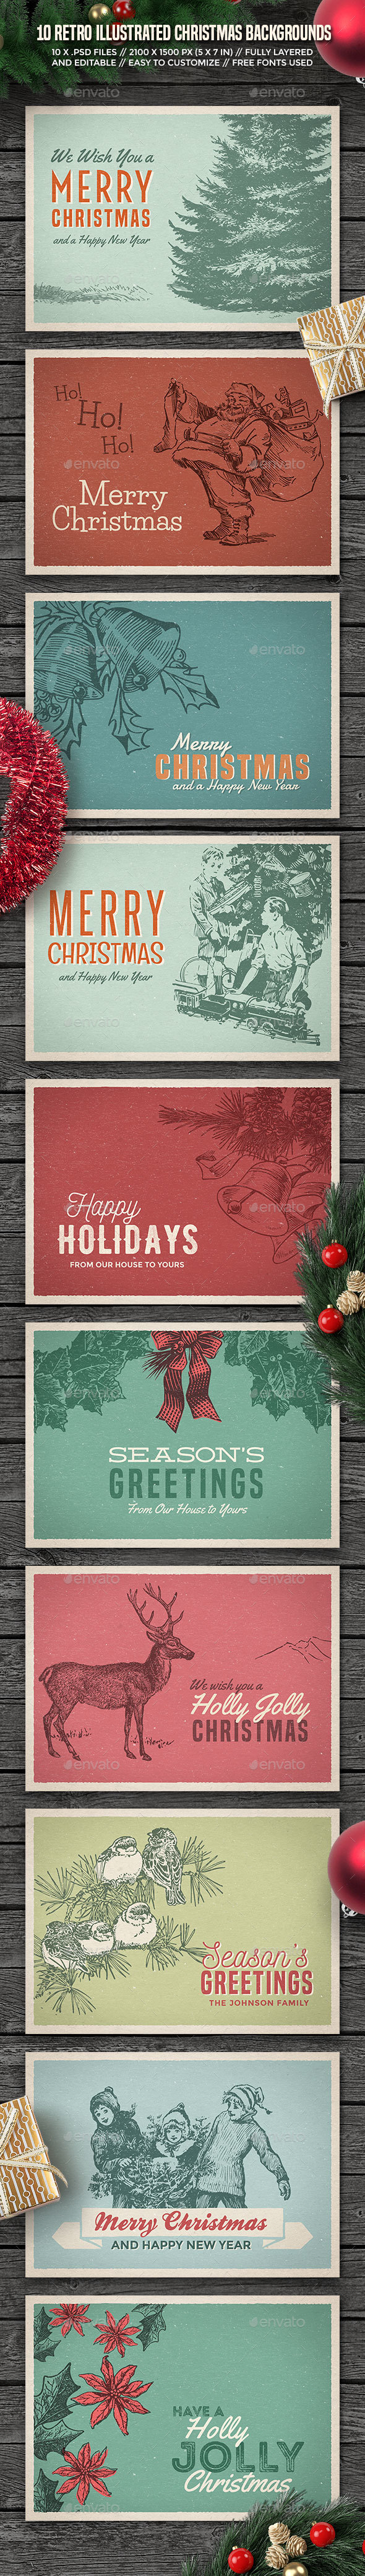 10 Retro Illustrated Christmas Backgrounds/Cards - Backgrounds Graphics